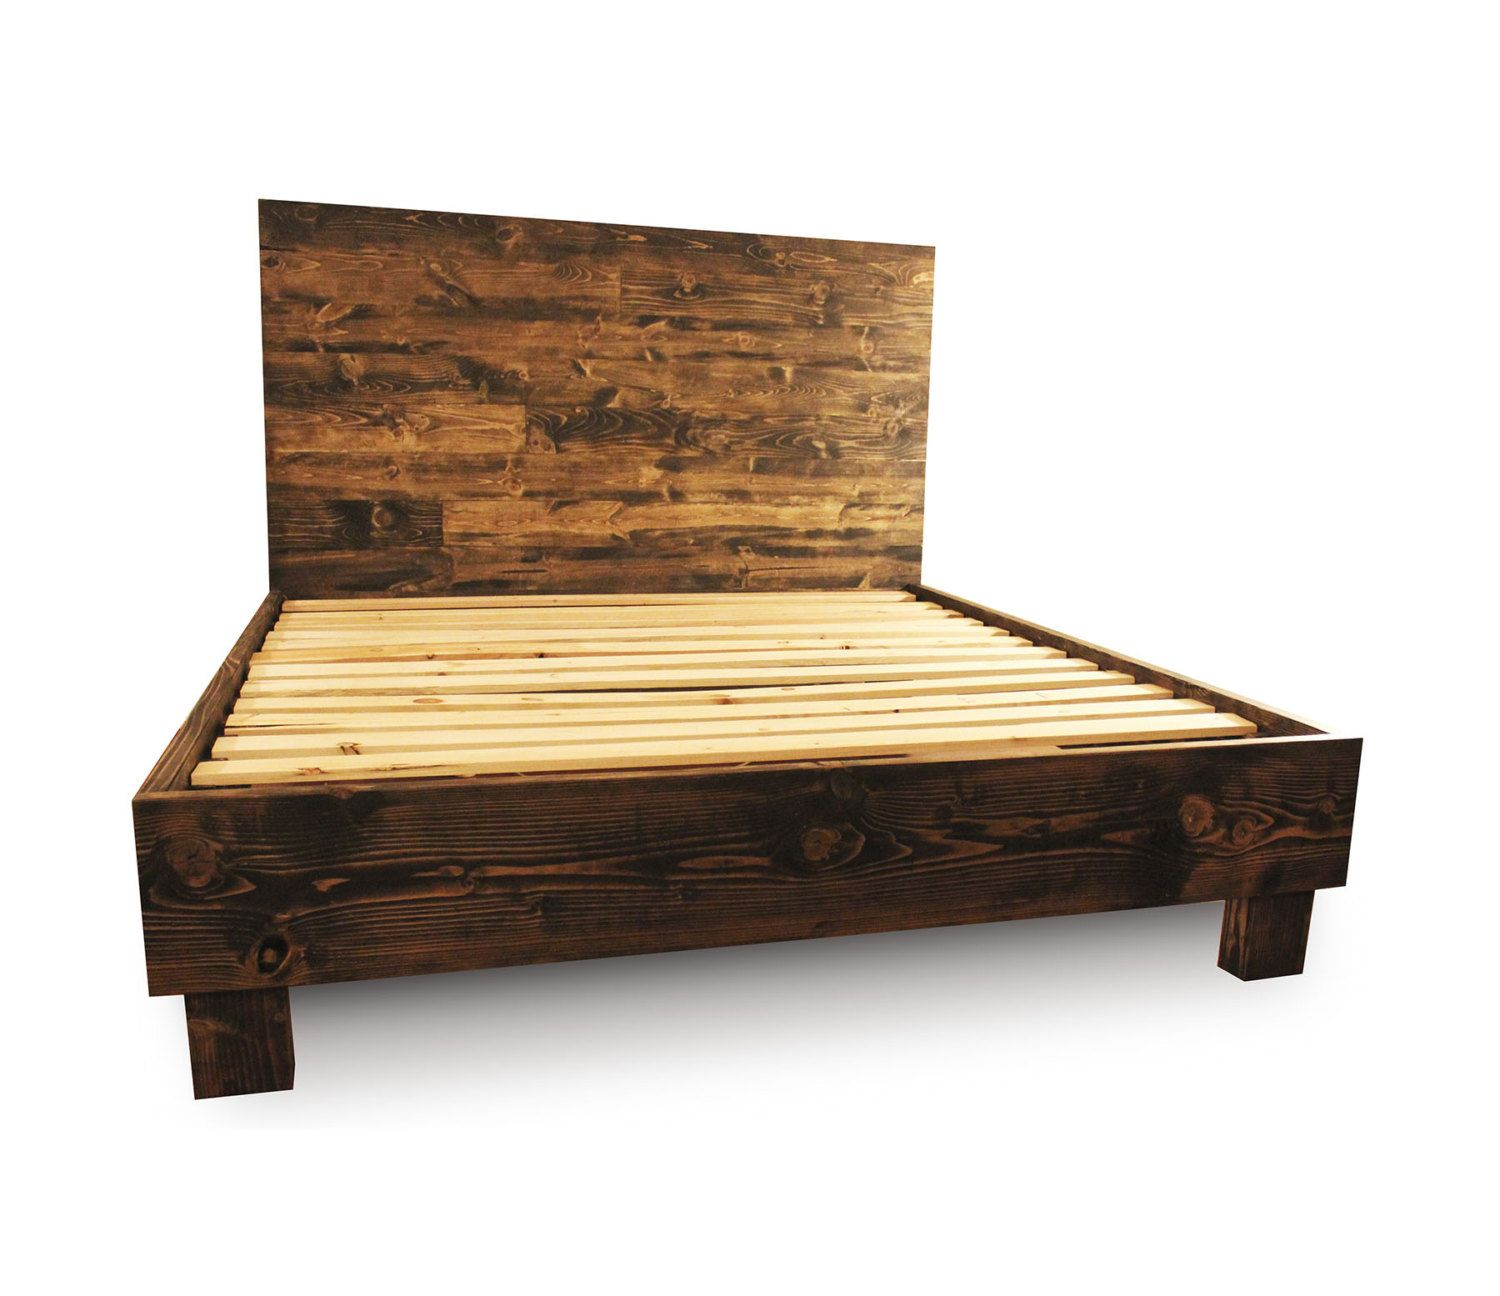 Elegant Full Size Wooden Bed Frame With Headboard In 2020 Rustic